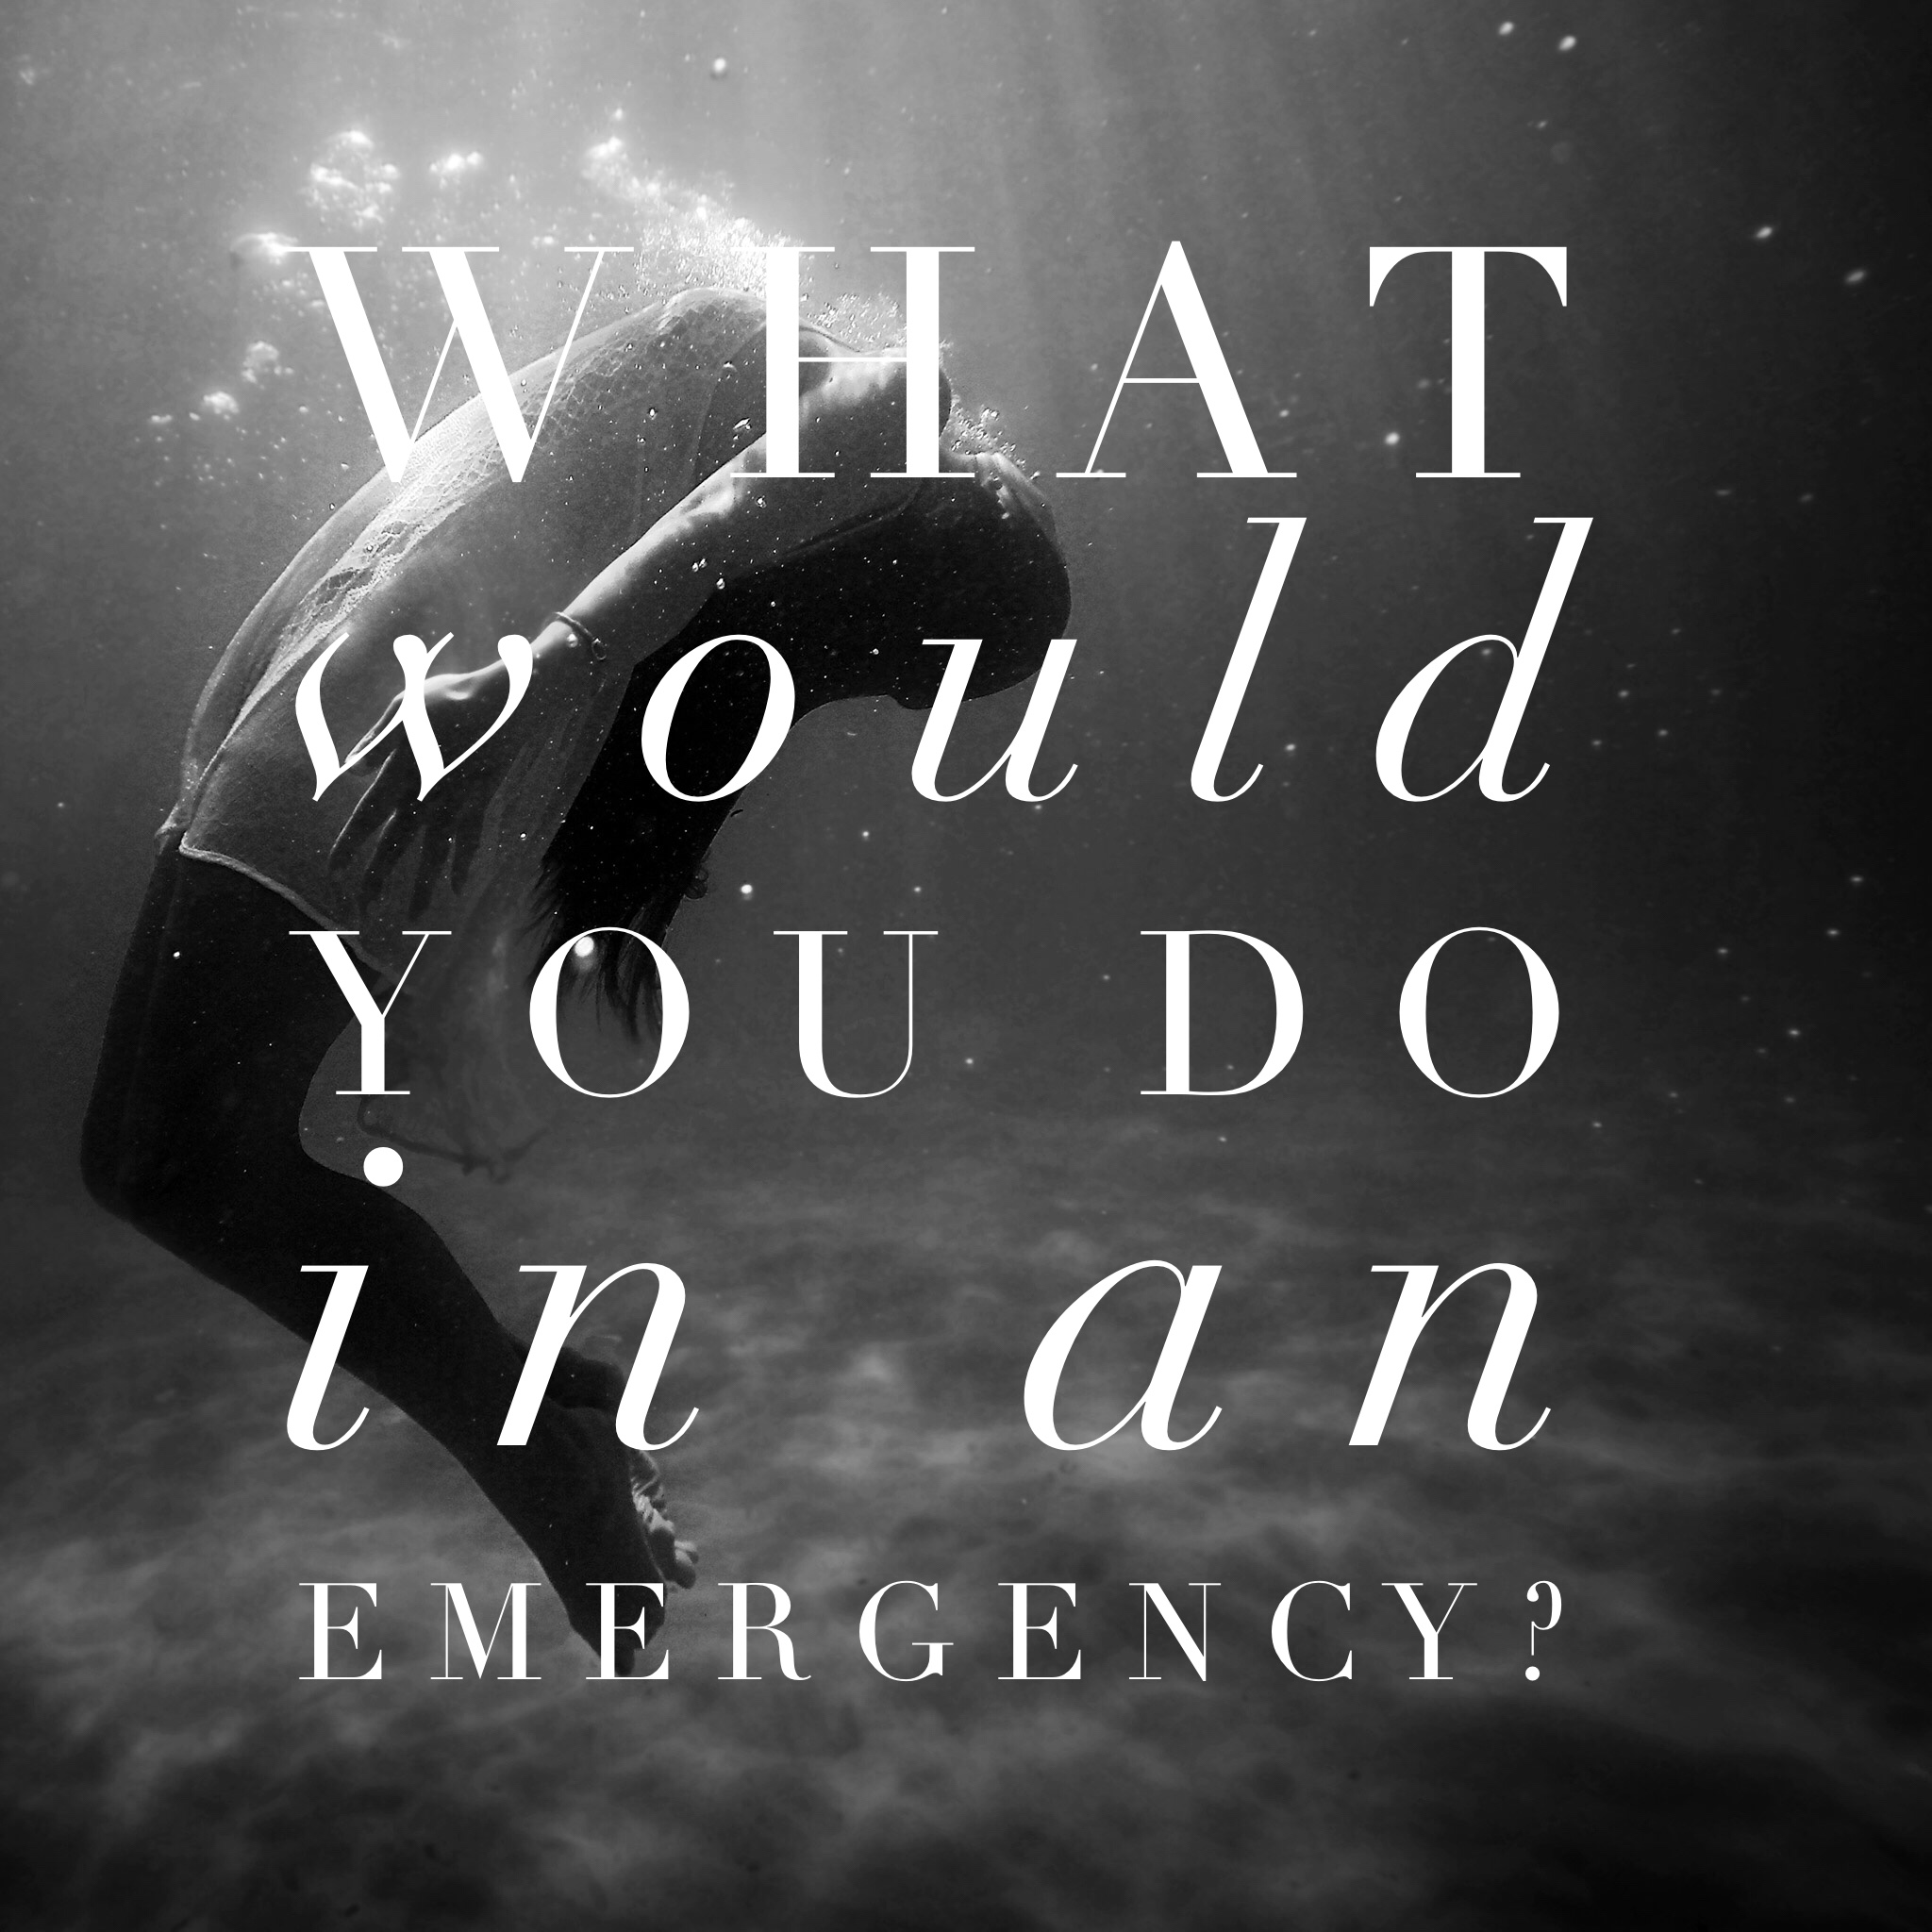 What would you do in an emergency?